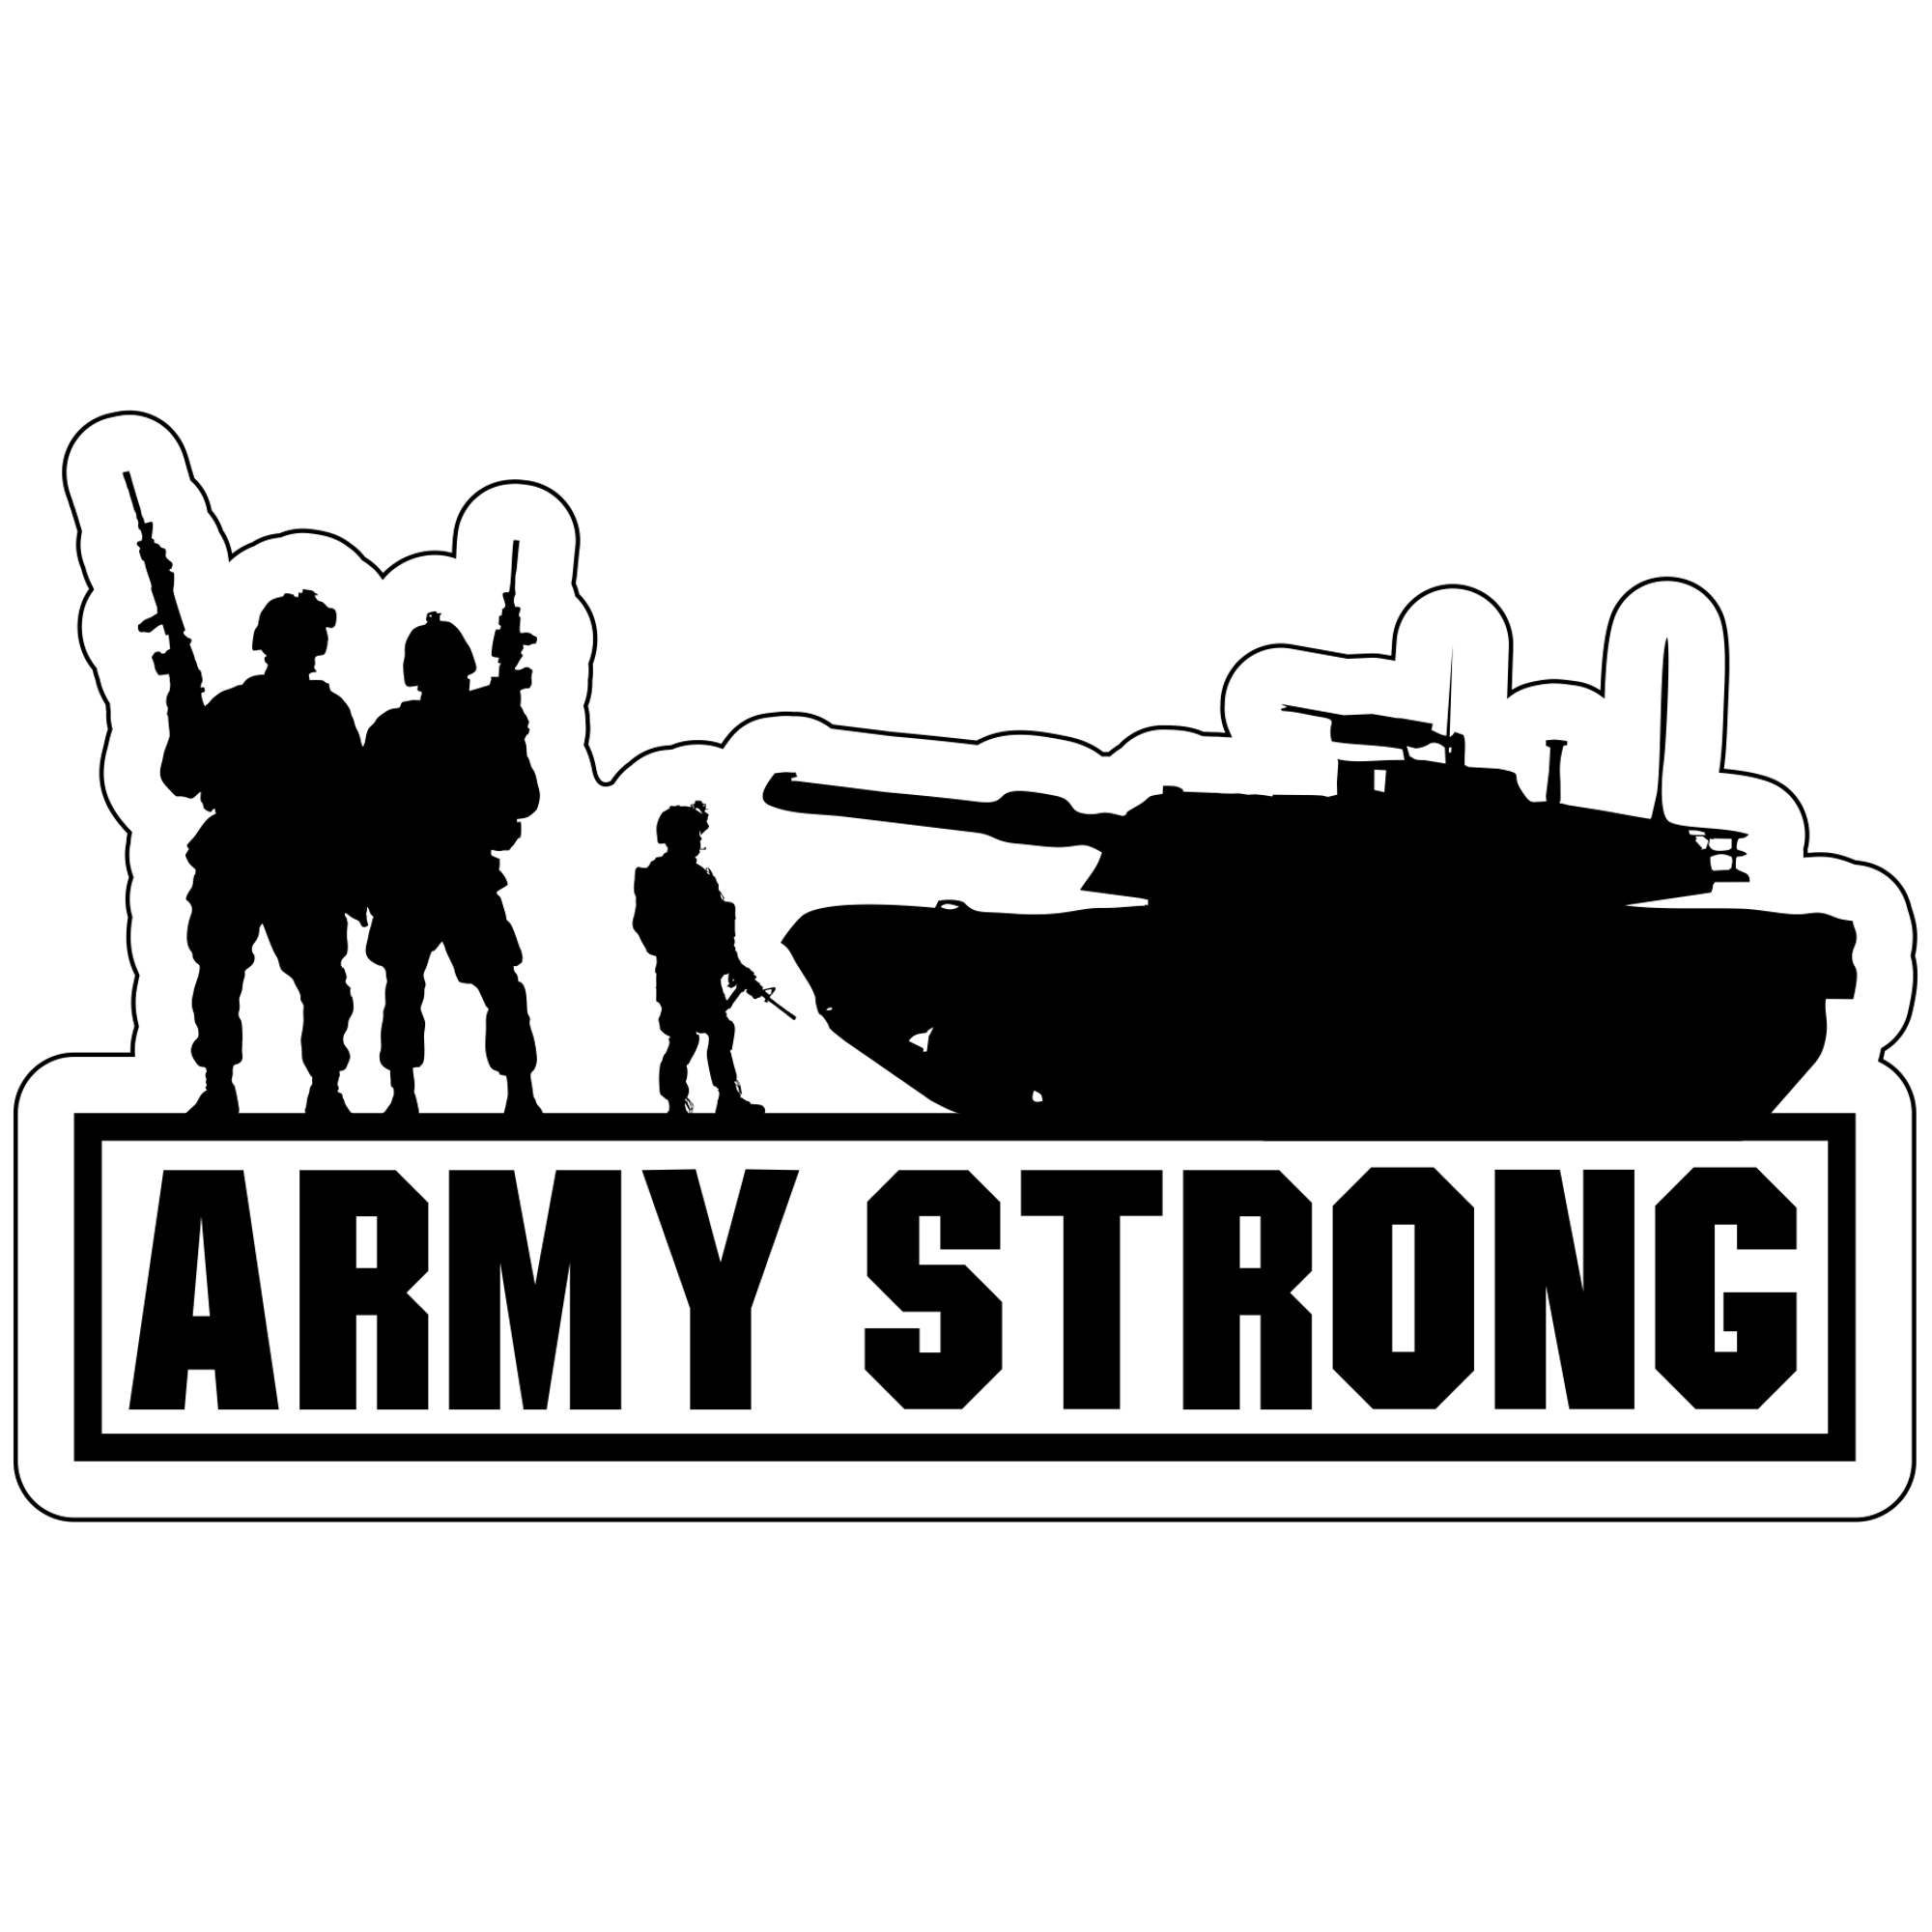 "United States ""Army Strong"" Tank - 6.5x4 inch Magnet"